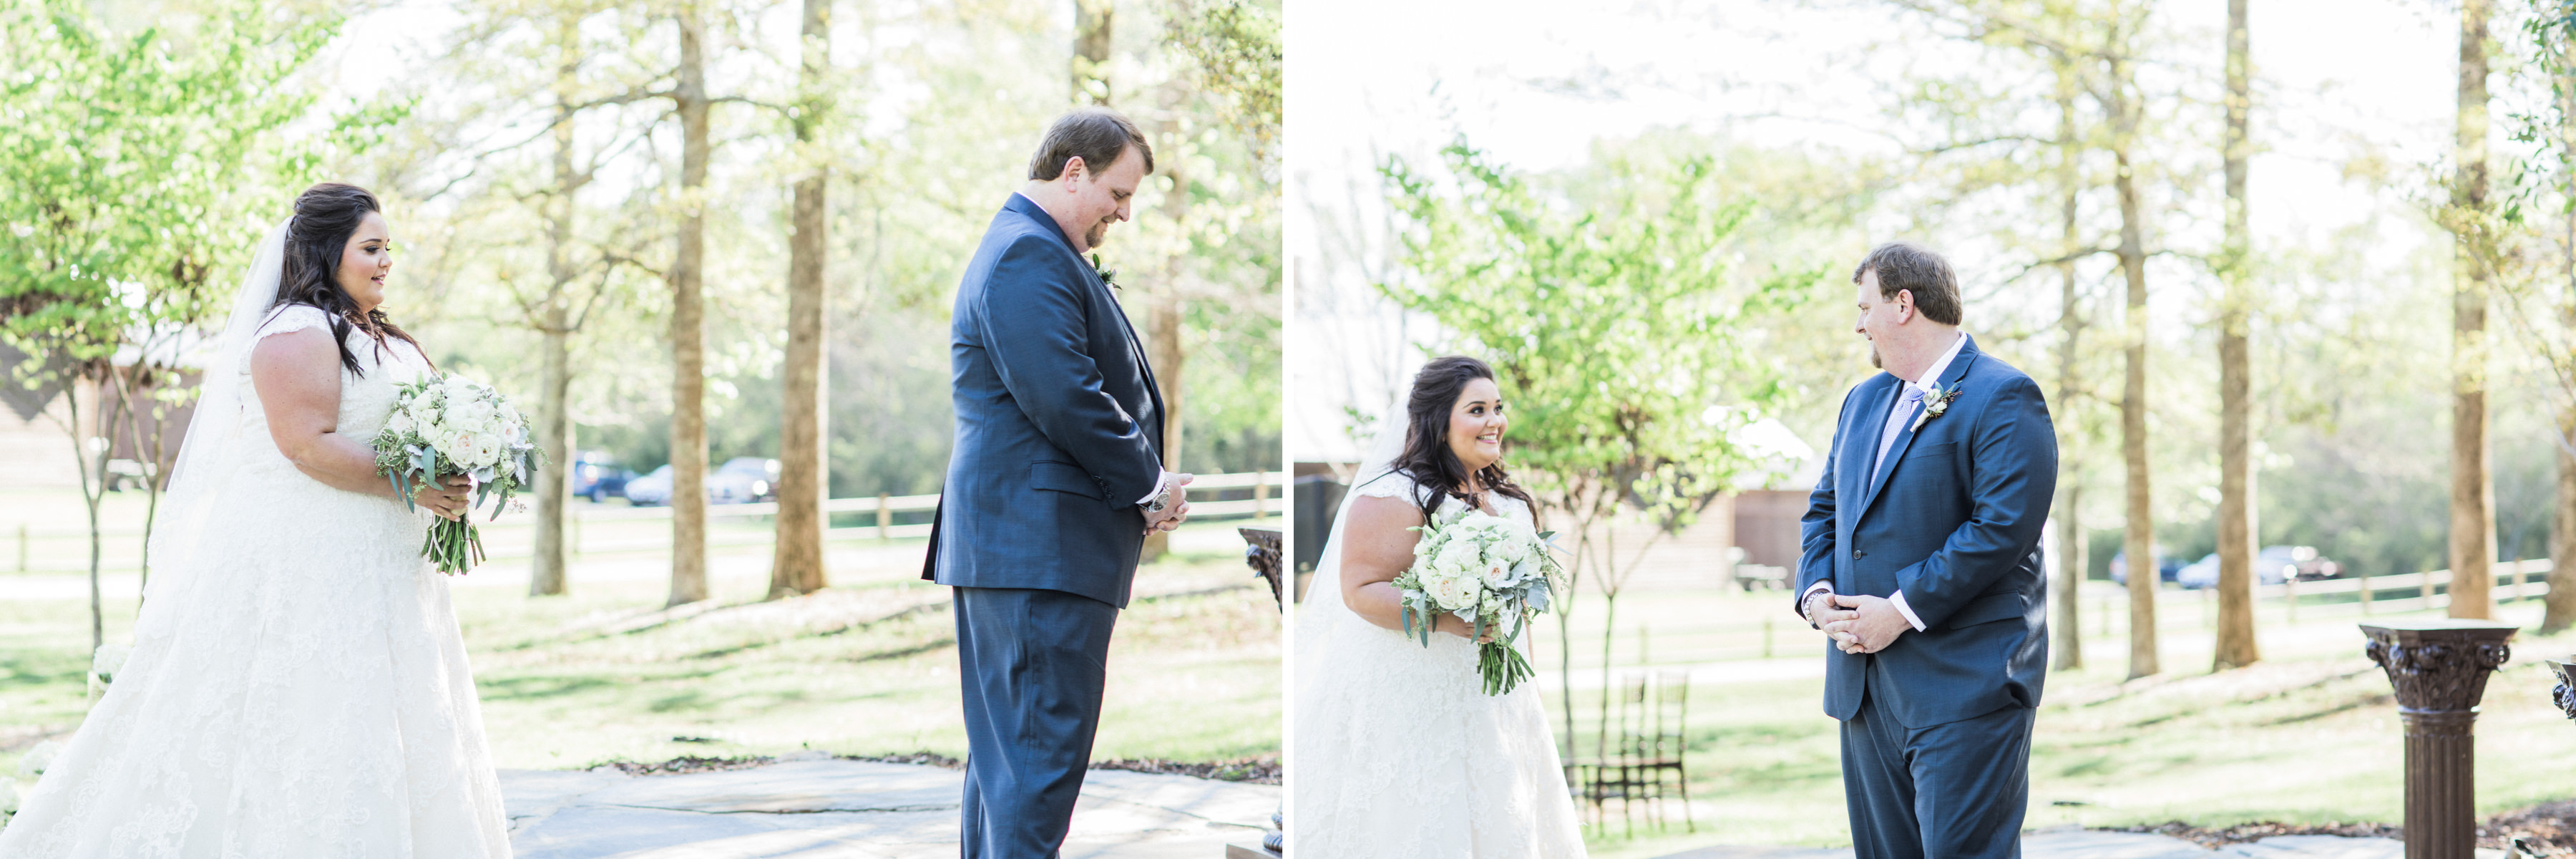 CAHOON_WEDDING_BIRMINGHAM_ALABAMA_WEDDING_PHOTOGRAPHY_45